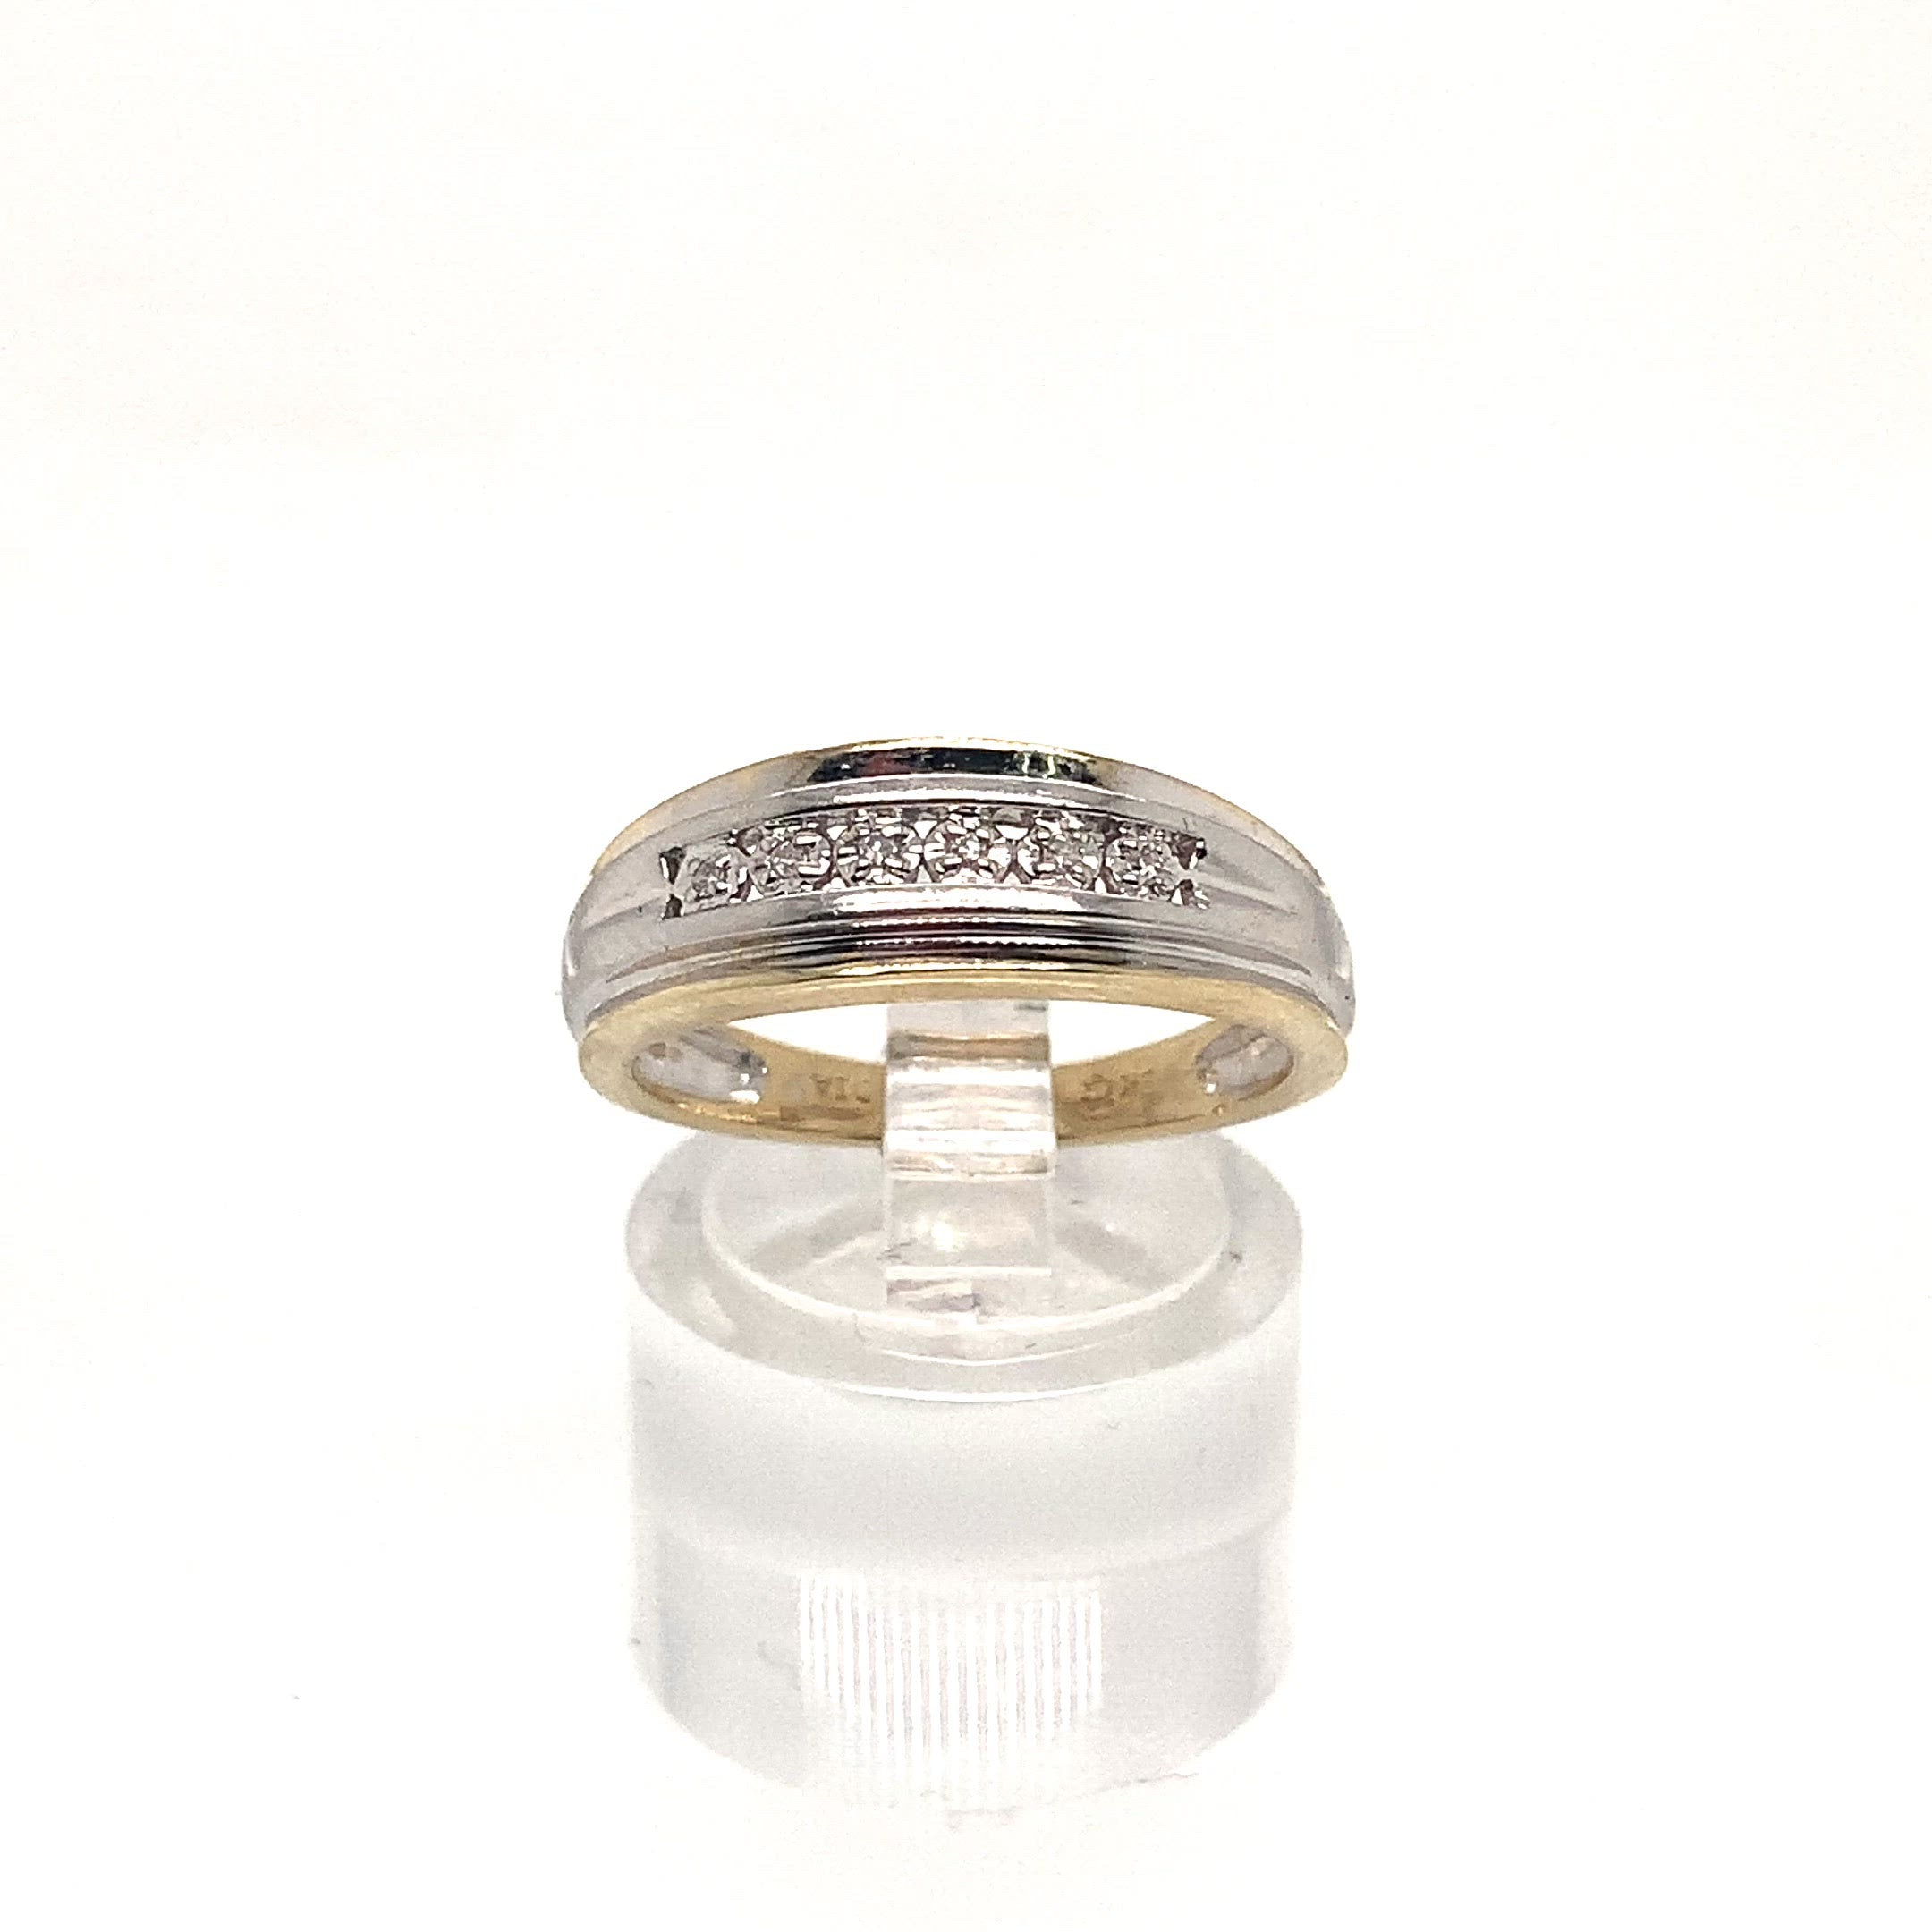 9ct Gold Diamond Ring - Illusion Set Line